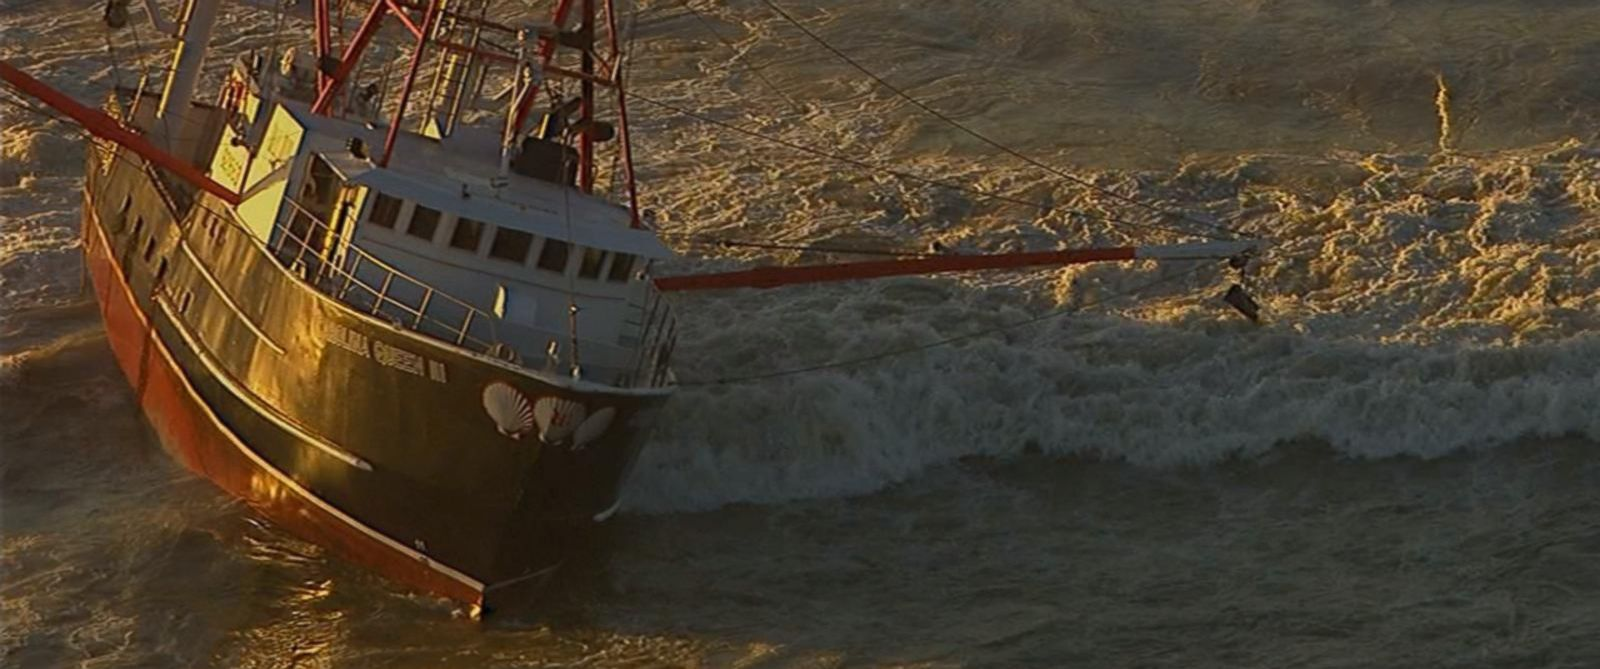 PHOTO:A 76-foot fishing boat ran aground early Thursday in Rockaway, Queens, and a coast guard ship was sent to help it but that boat (not pictured) flipped over.